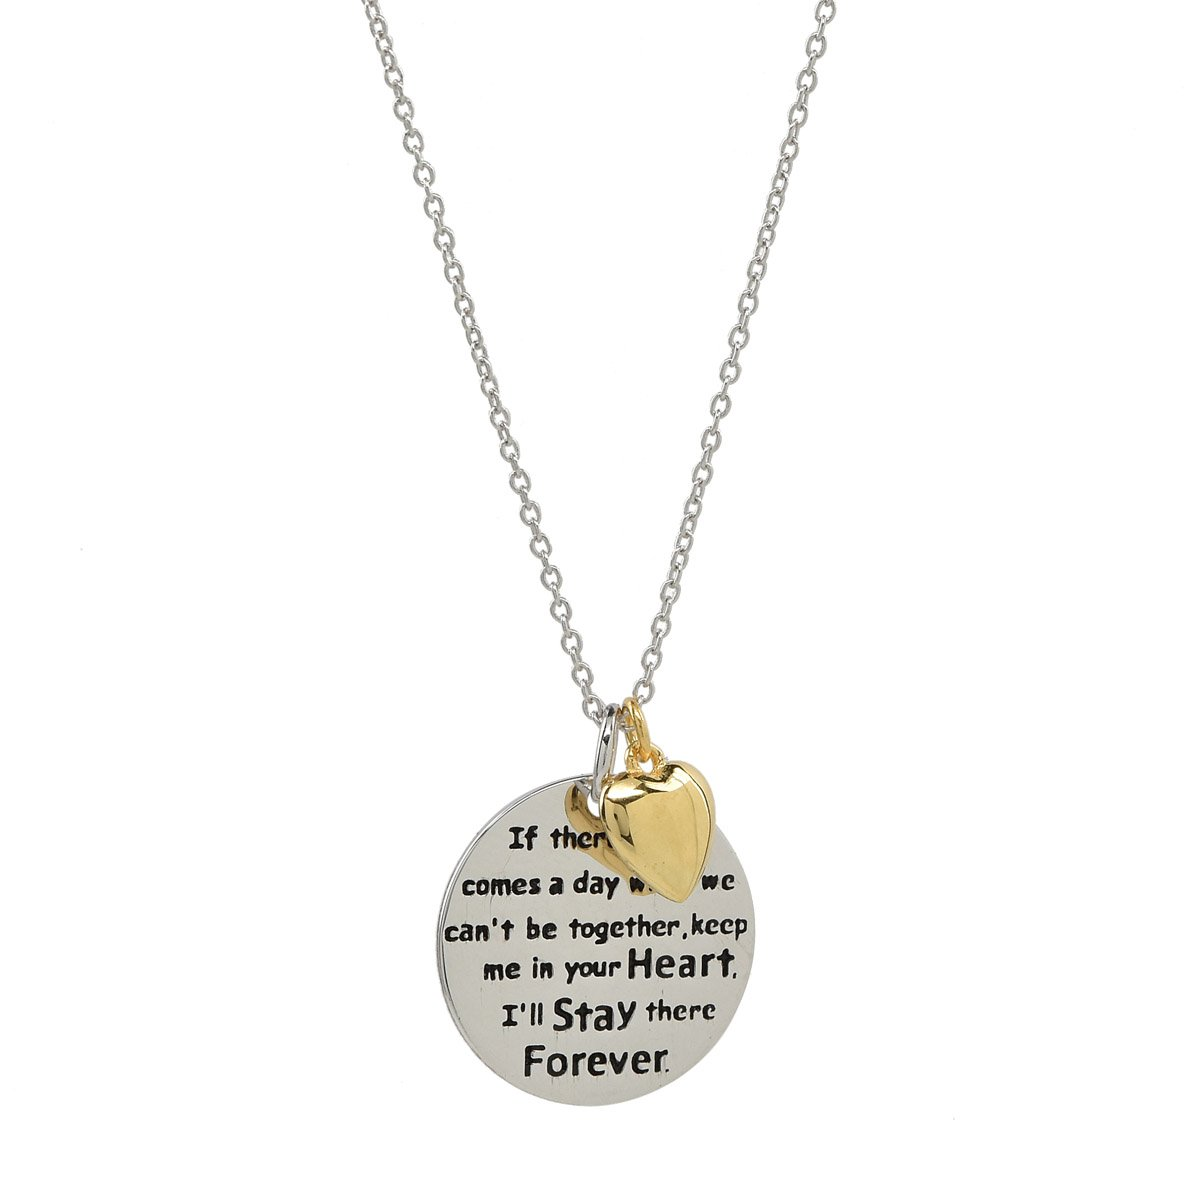 Steal My Heart If There Ever Comes A Day When We Can't Be Together… Pendant Necklace